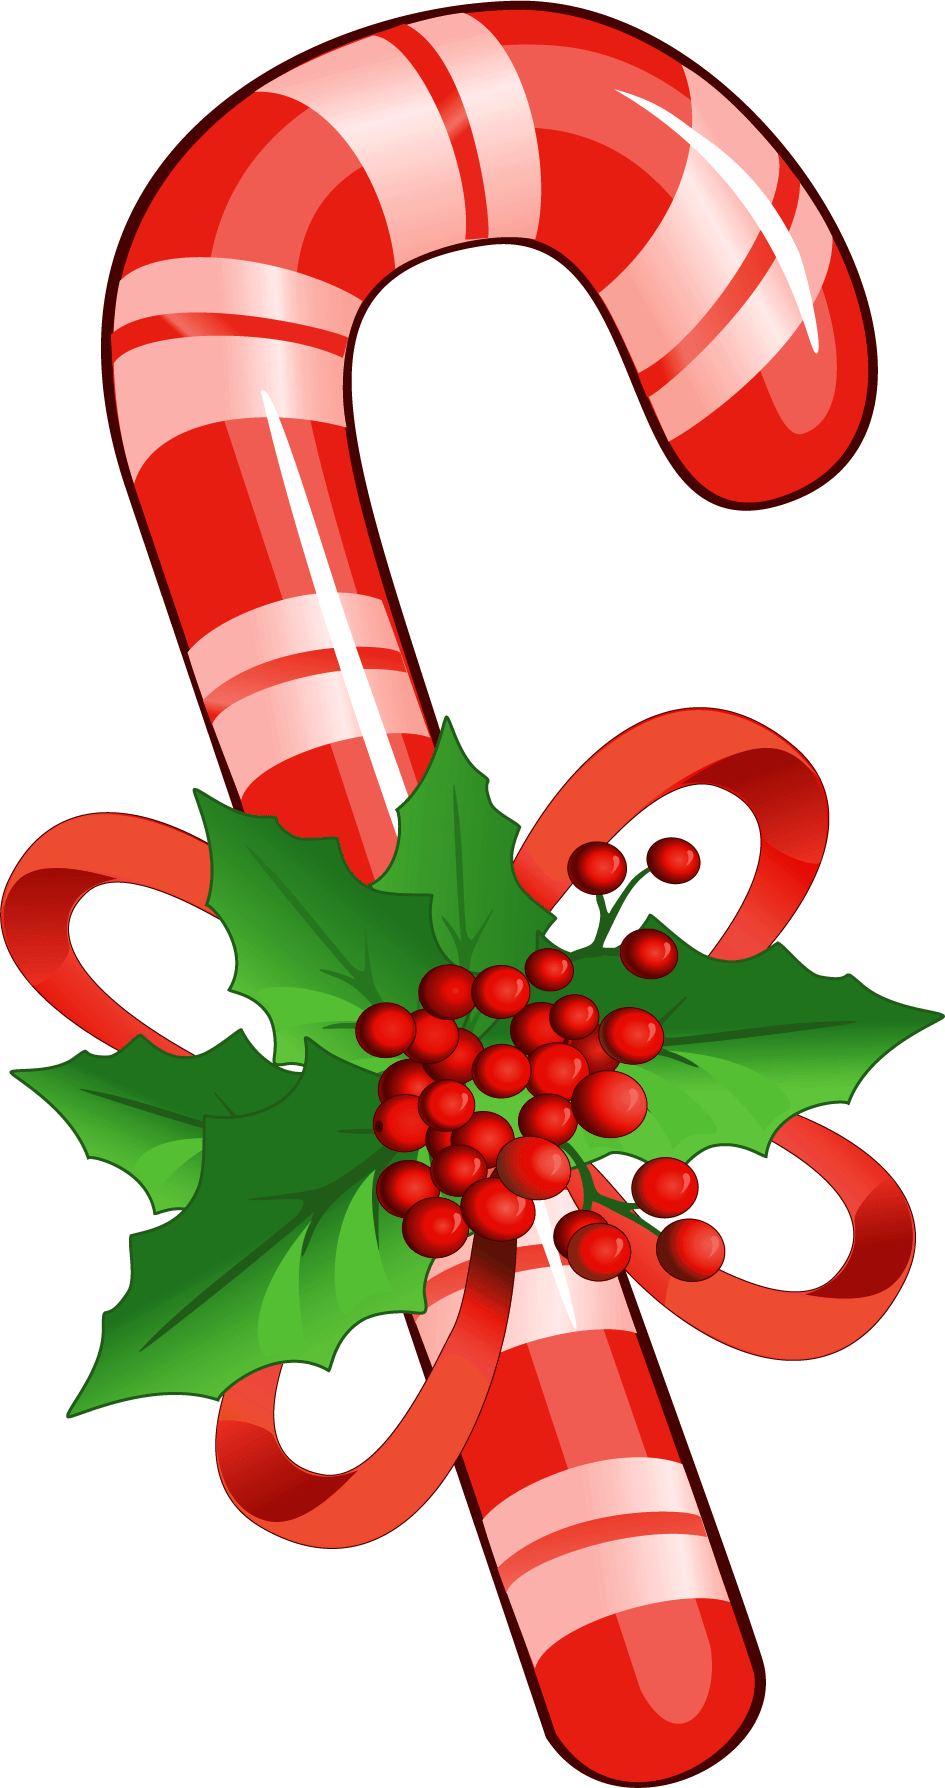 candy cane clipart png Google Search LibraryClipart